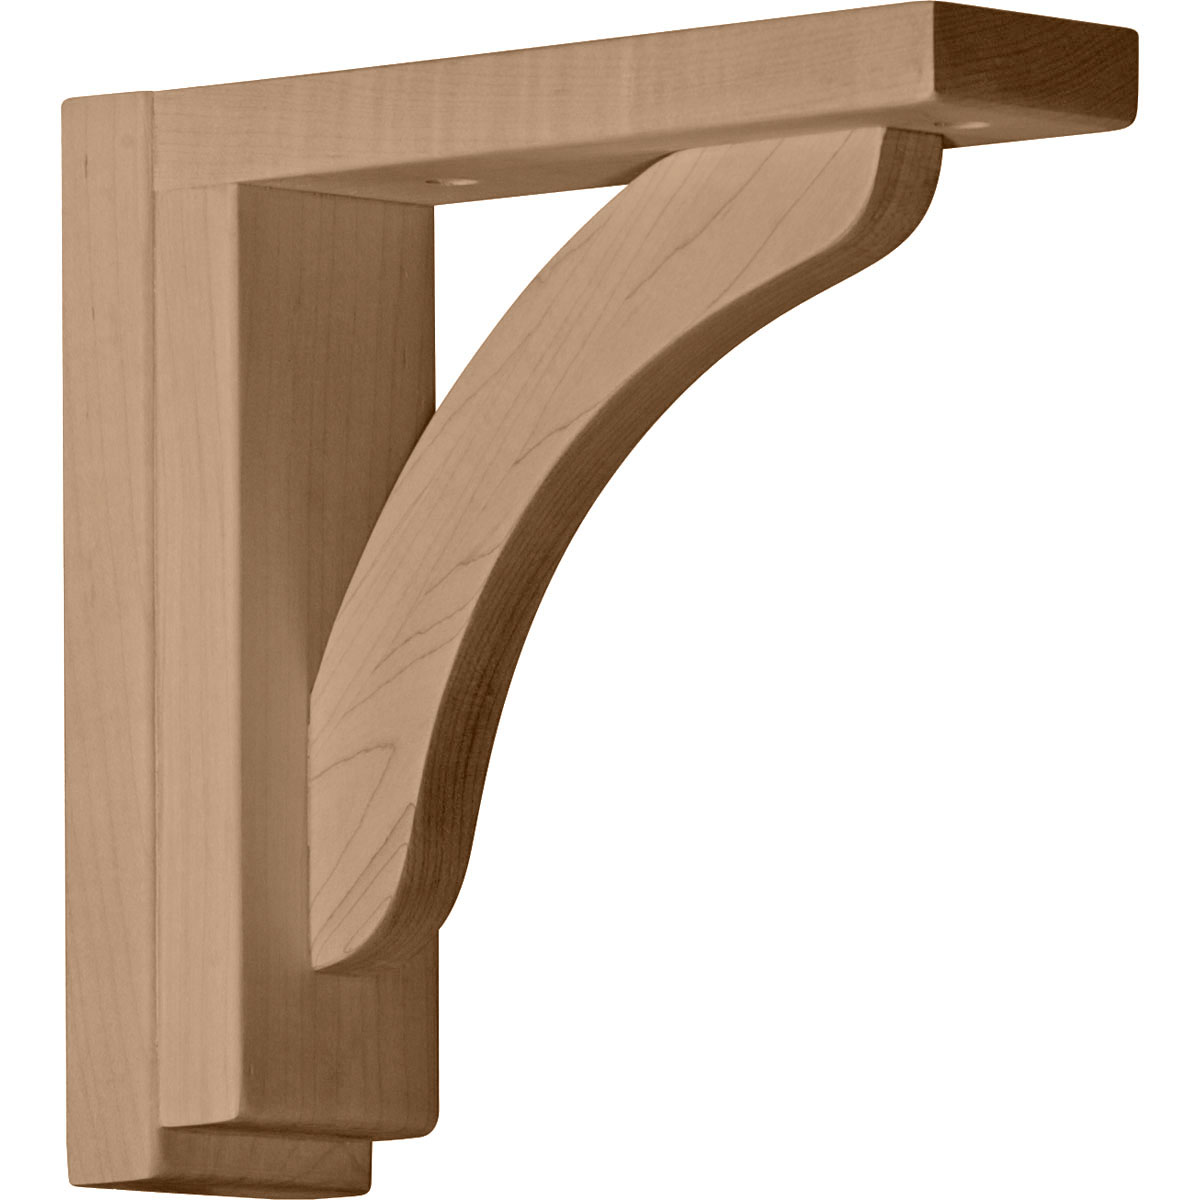 Woodworking wood brackets for shelves PDF Free Download